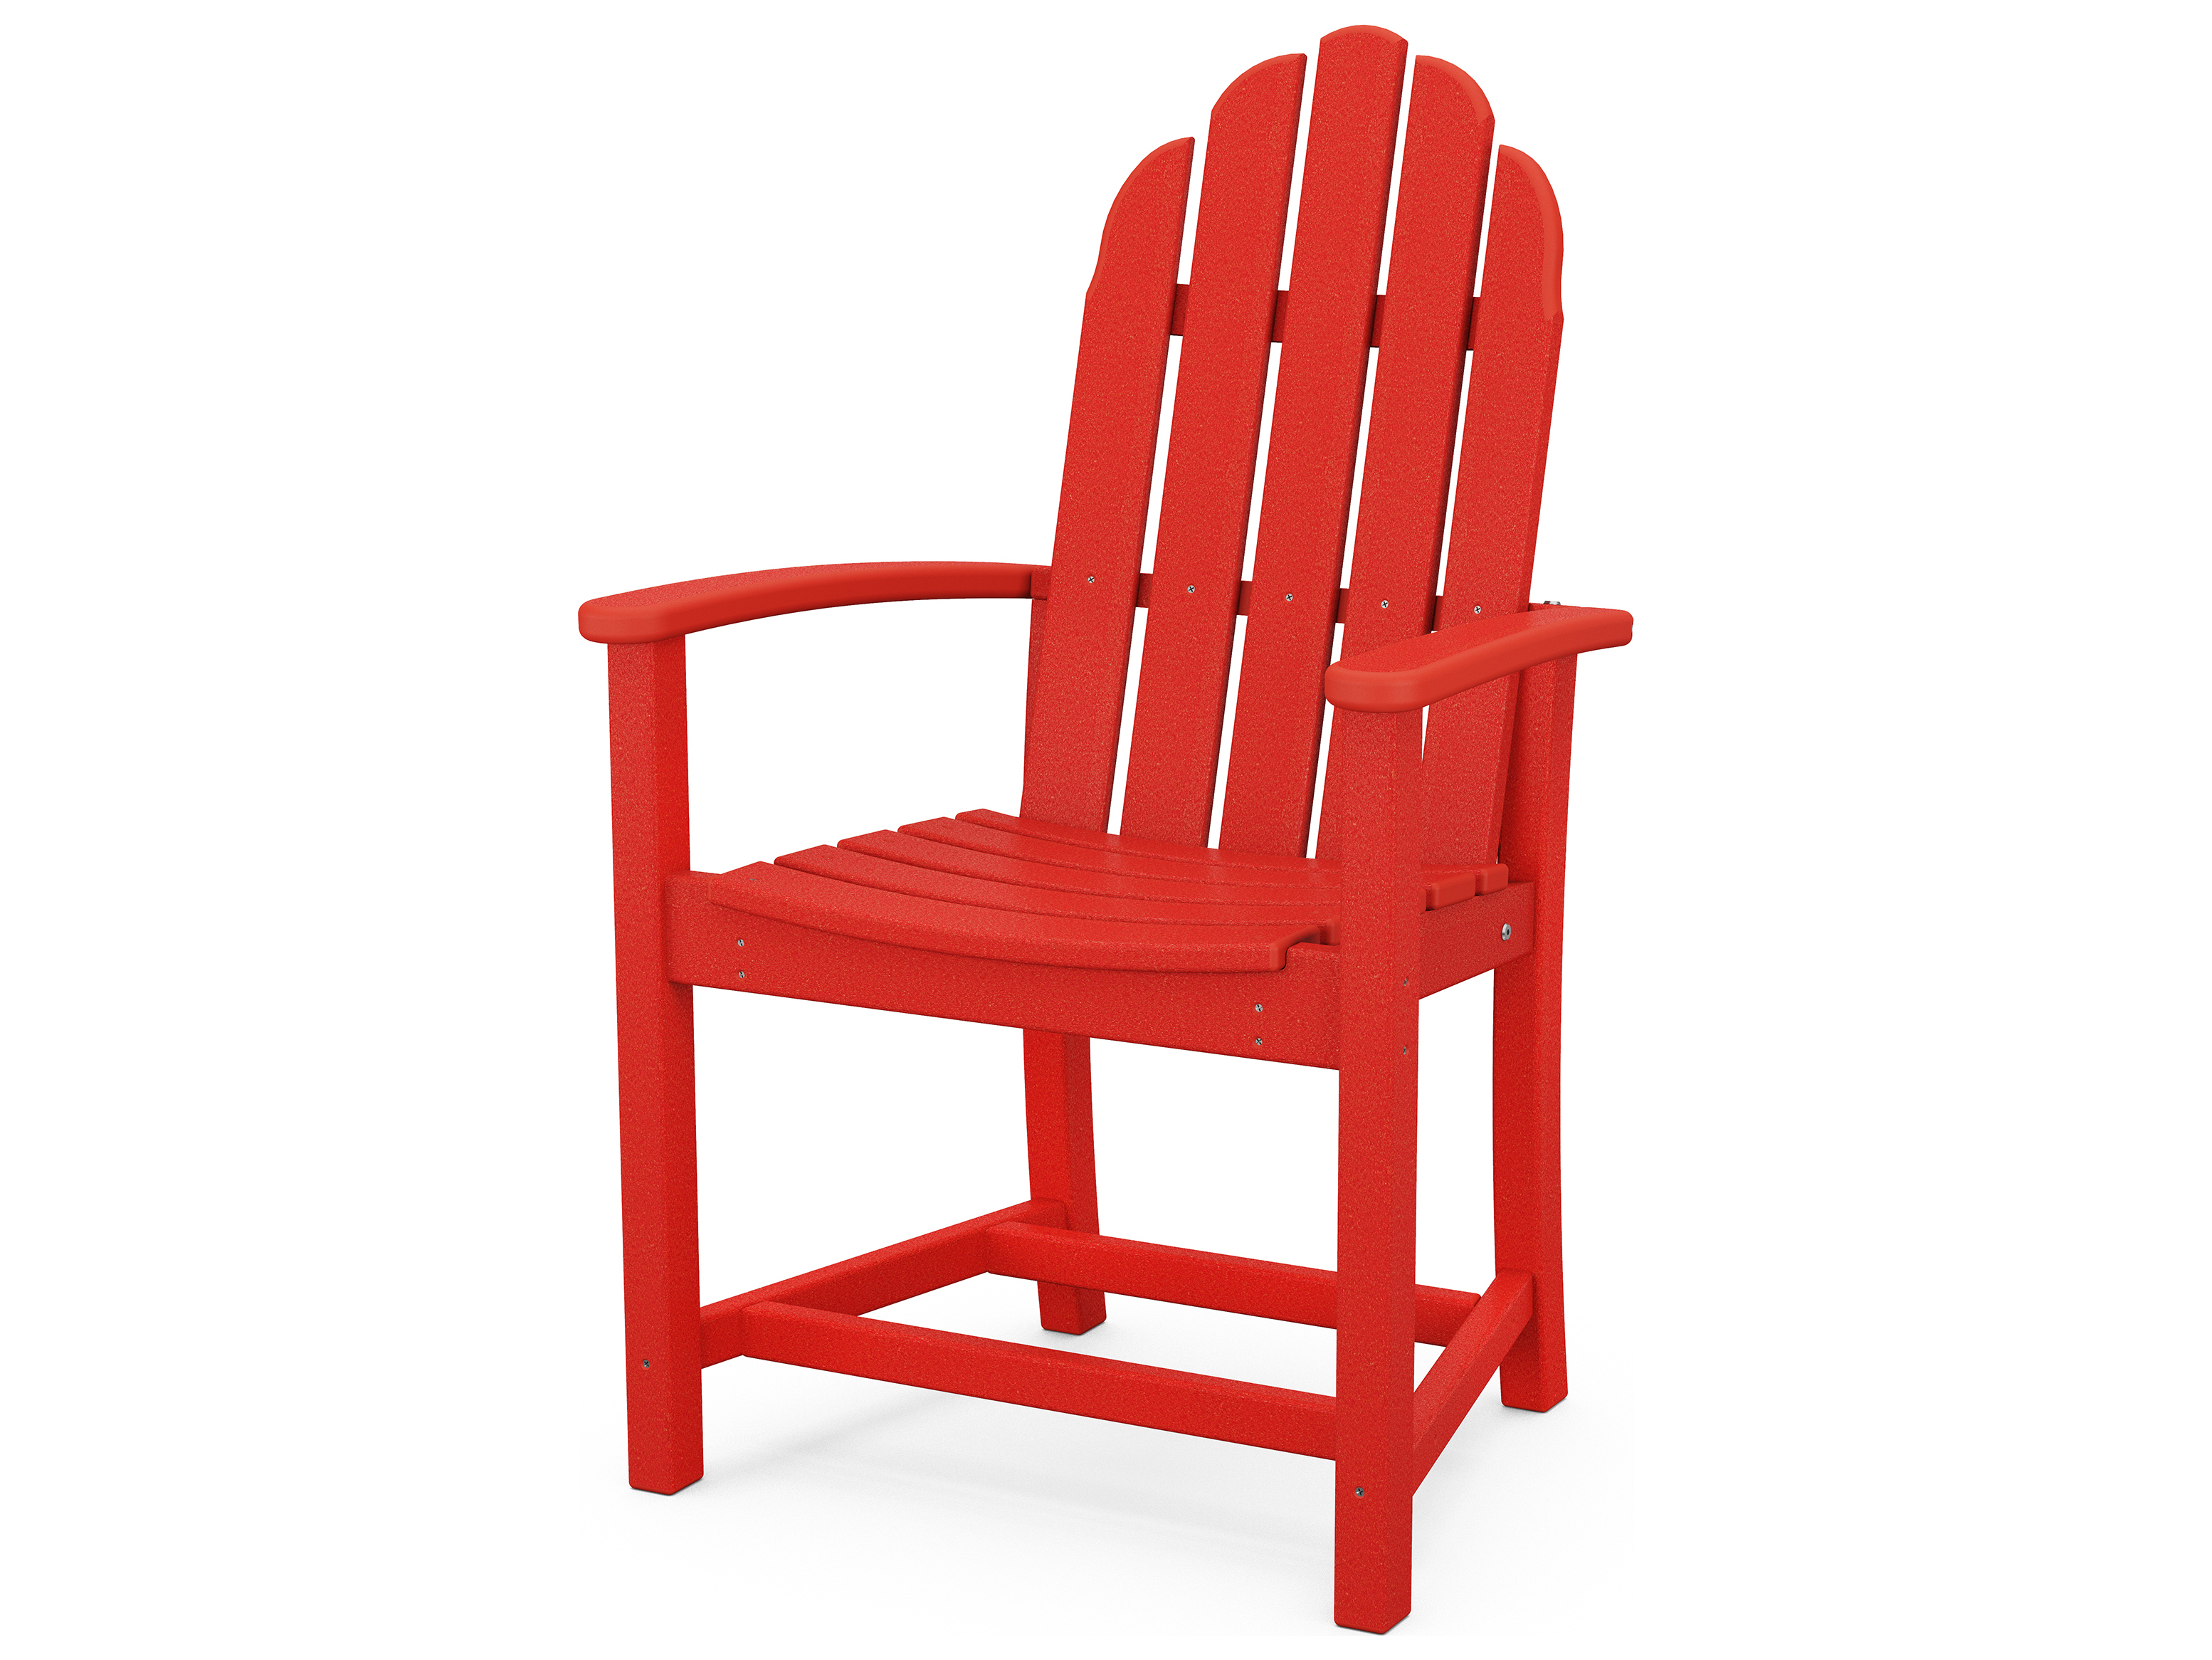 Polywood 174 Classic Adirondack Recycled Plastic Dining Chair